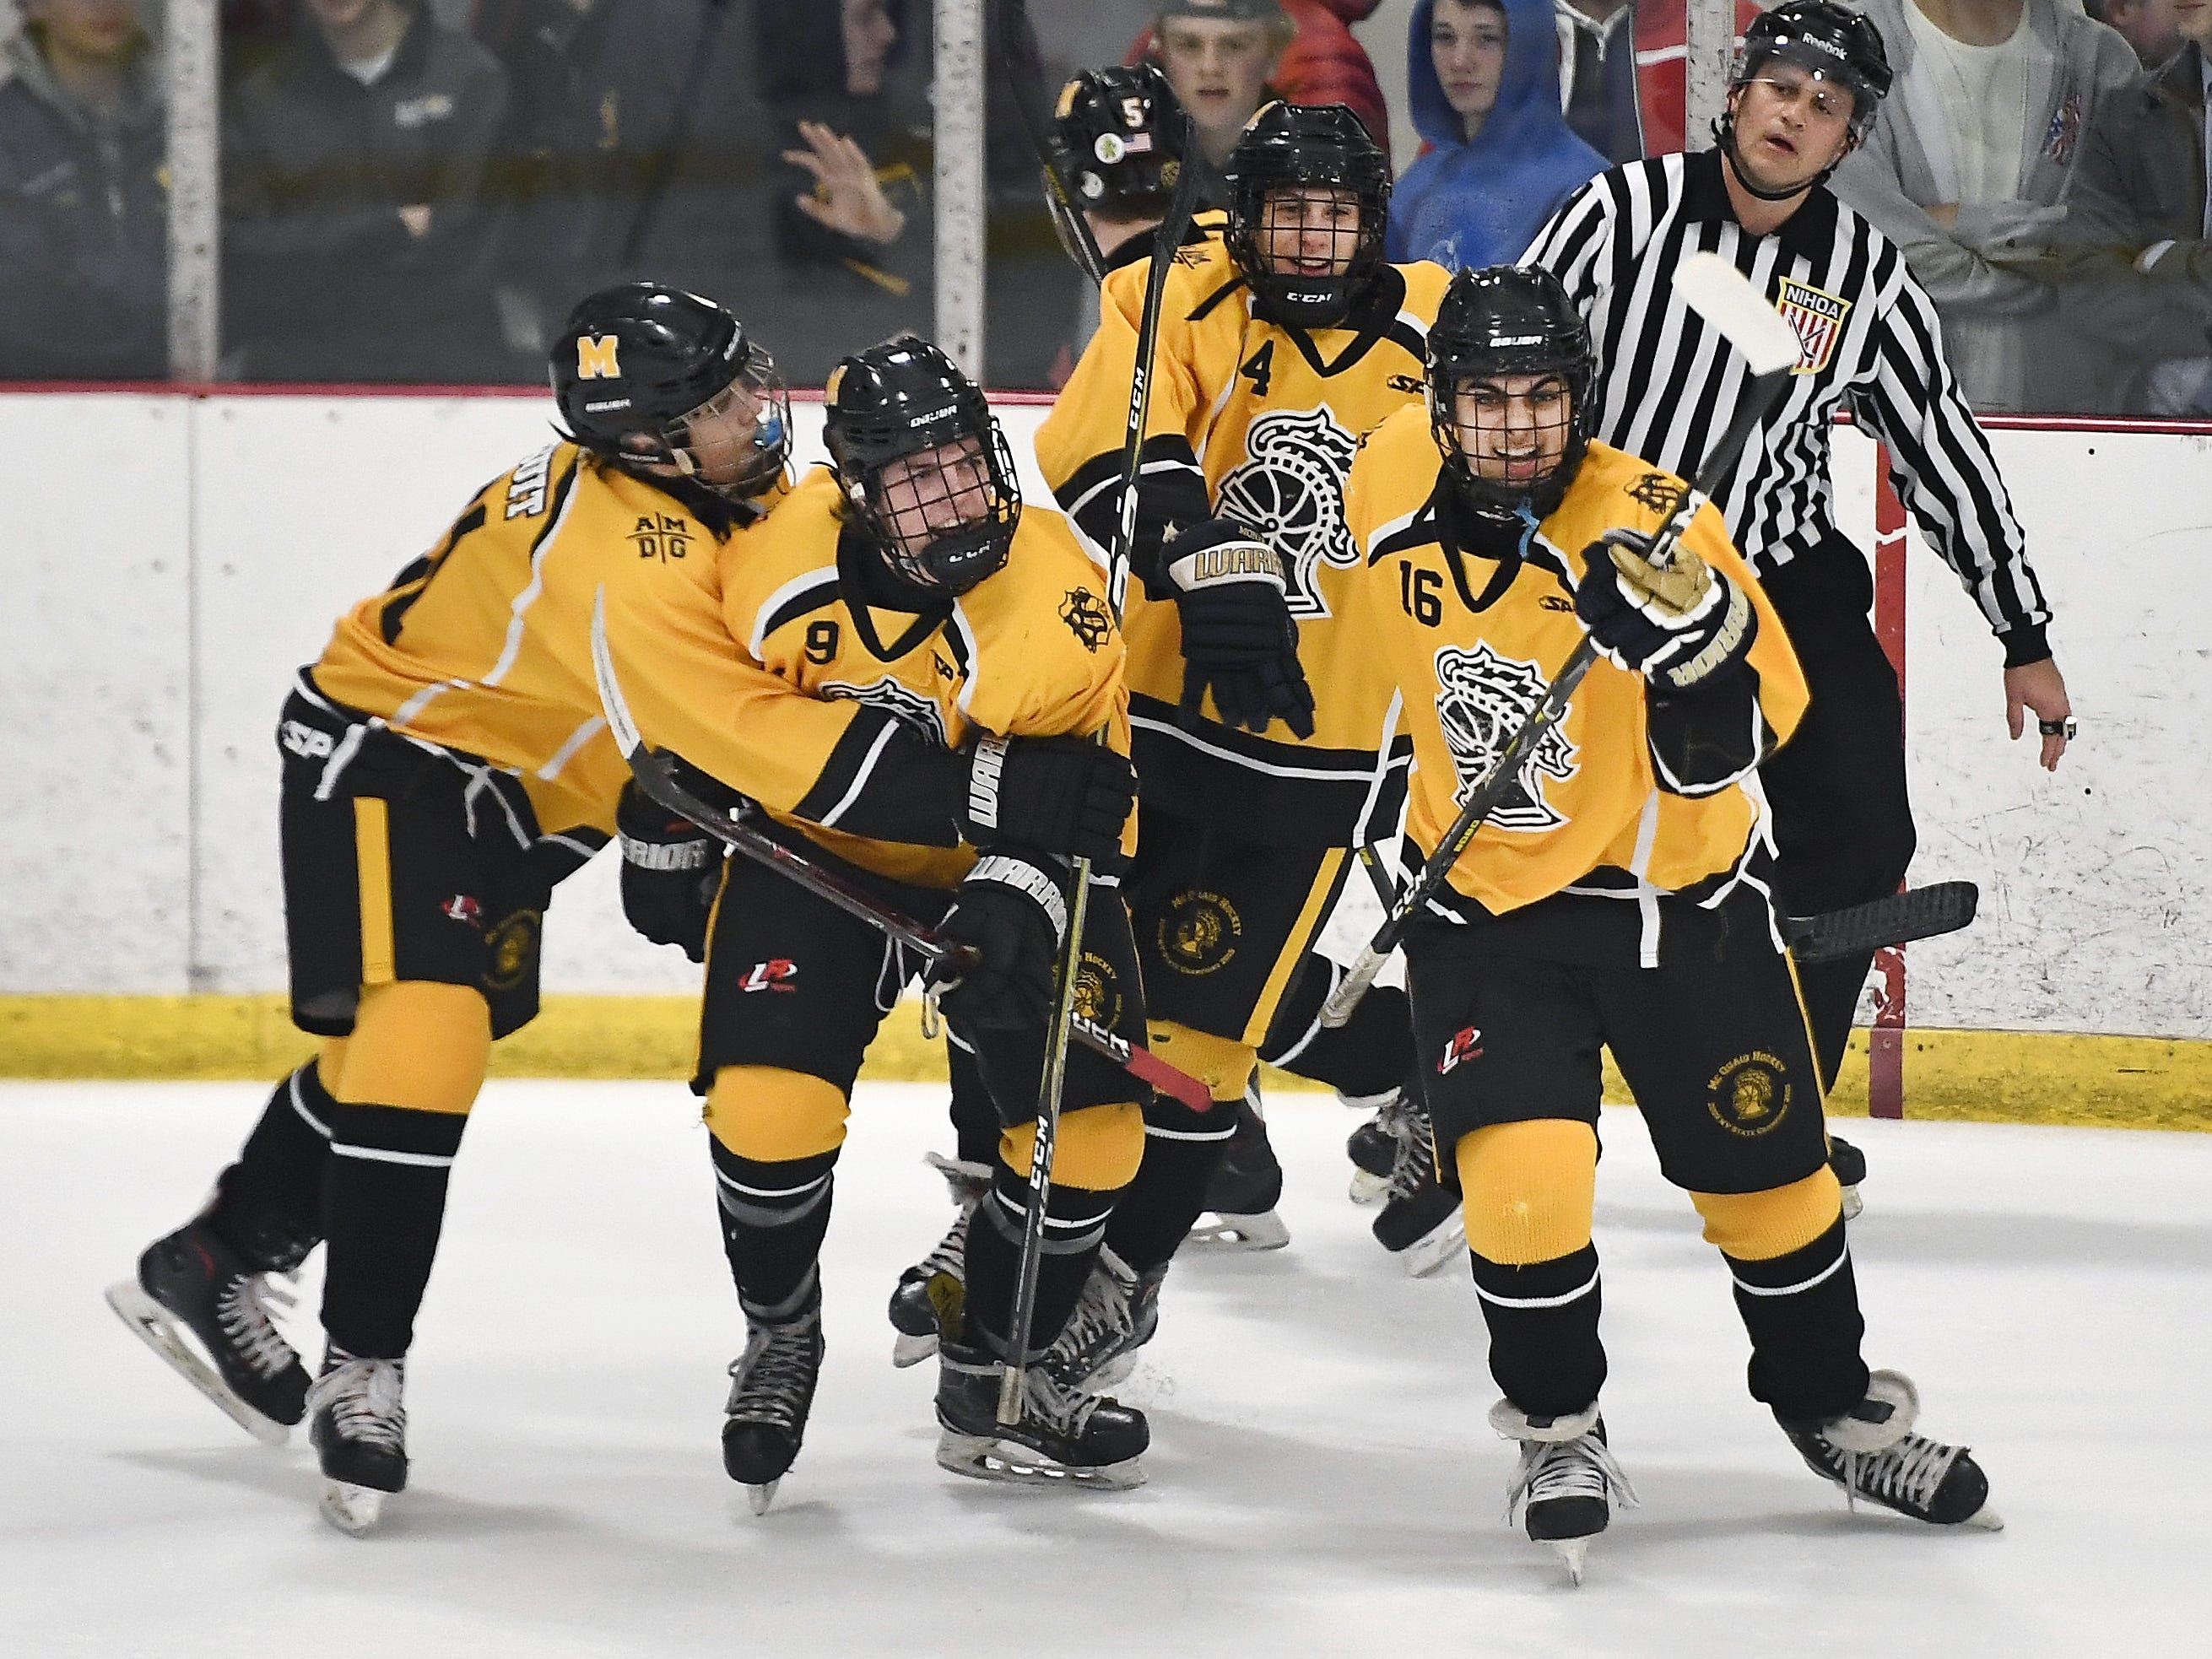 McQuaid's Zack Allen, second from left, celebrates his goal with teammates during the first period of a regular-season game played at the Rochester Ice Center, Wednesday, Feb. 6, 2019. McQuaid beat Fairport 5-4 in overtime.